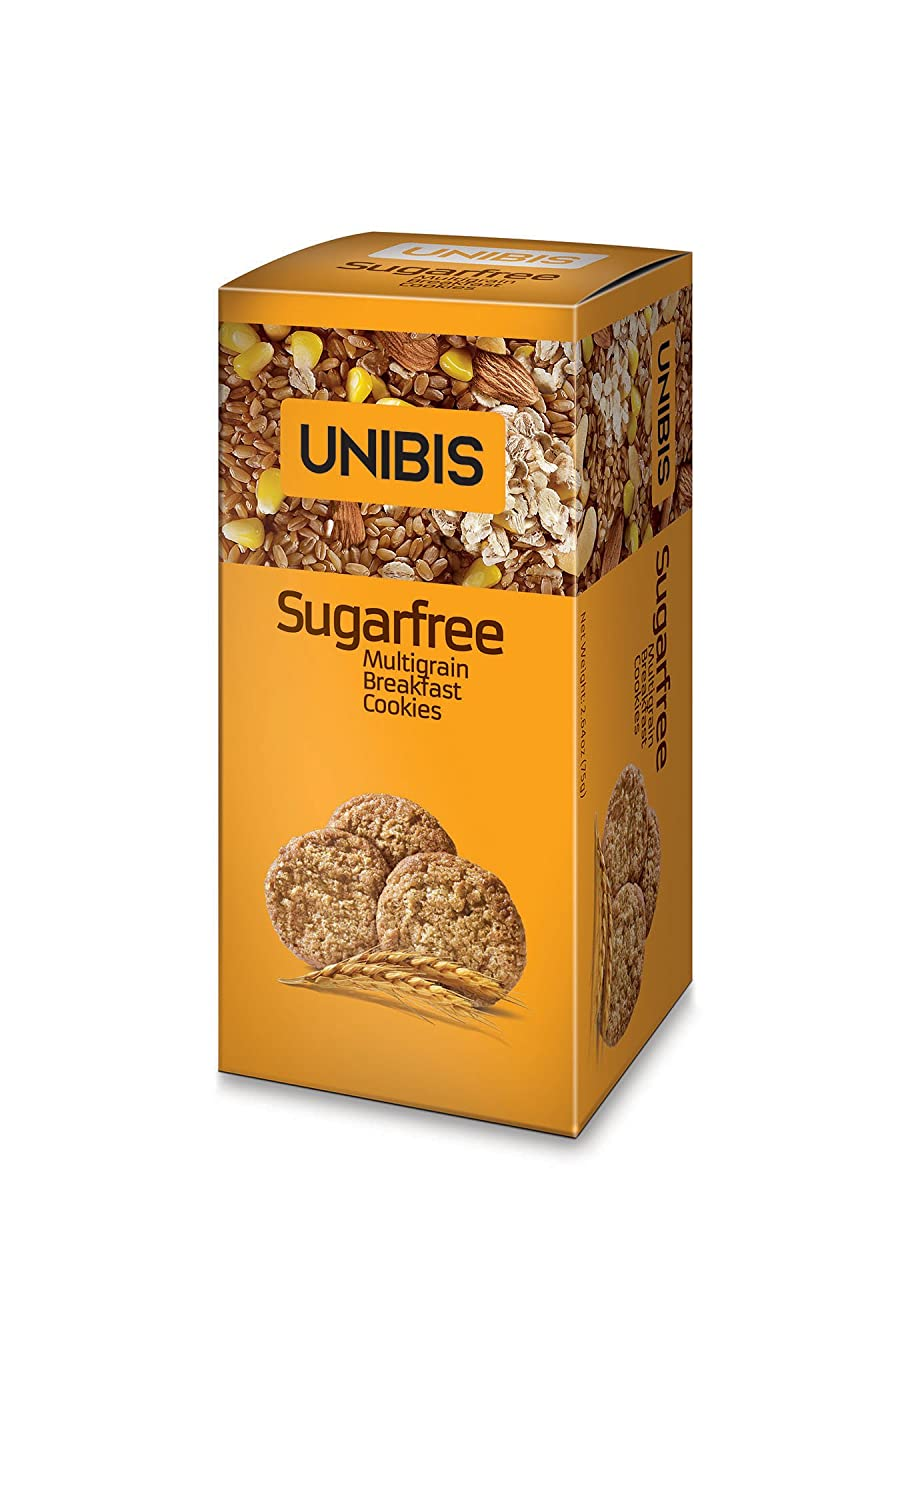 Amazon.com : Sugar Free Cookies - Multigrain Breakfast Cookies - Pack of 4 X 75 Grams - 10.6 Ounces - UNIBIS : Grocery & Gourmet Food